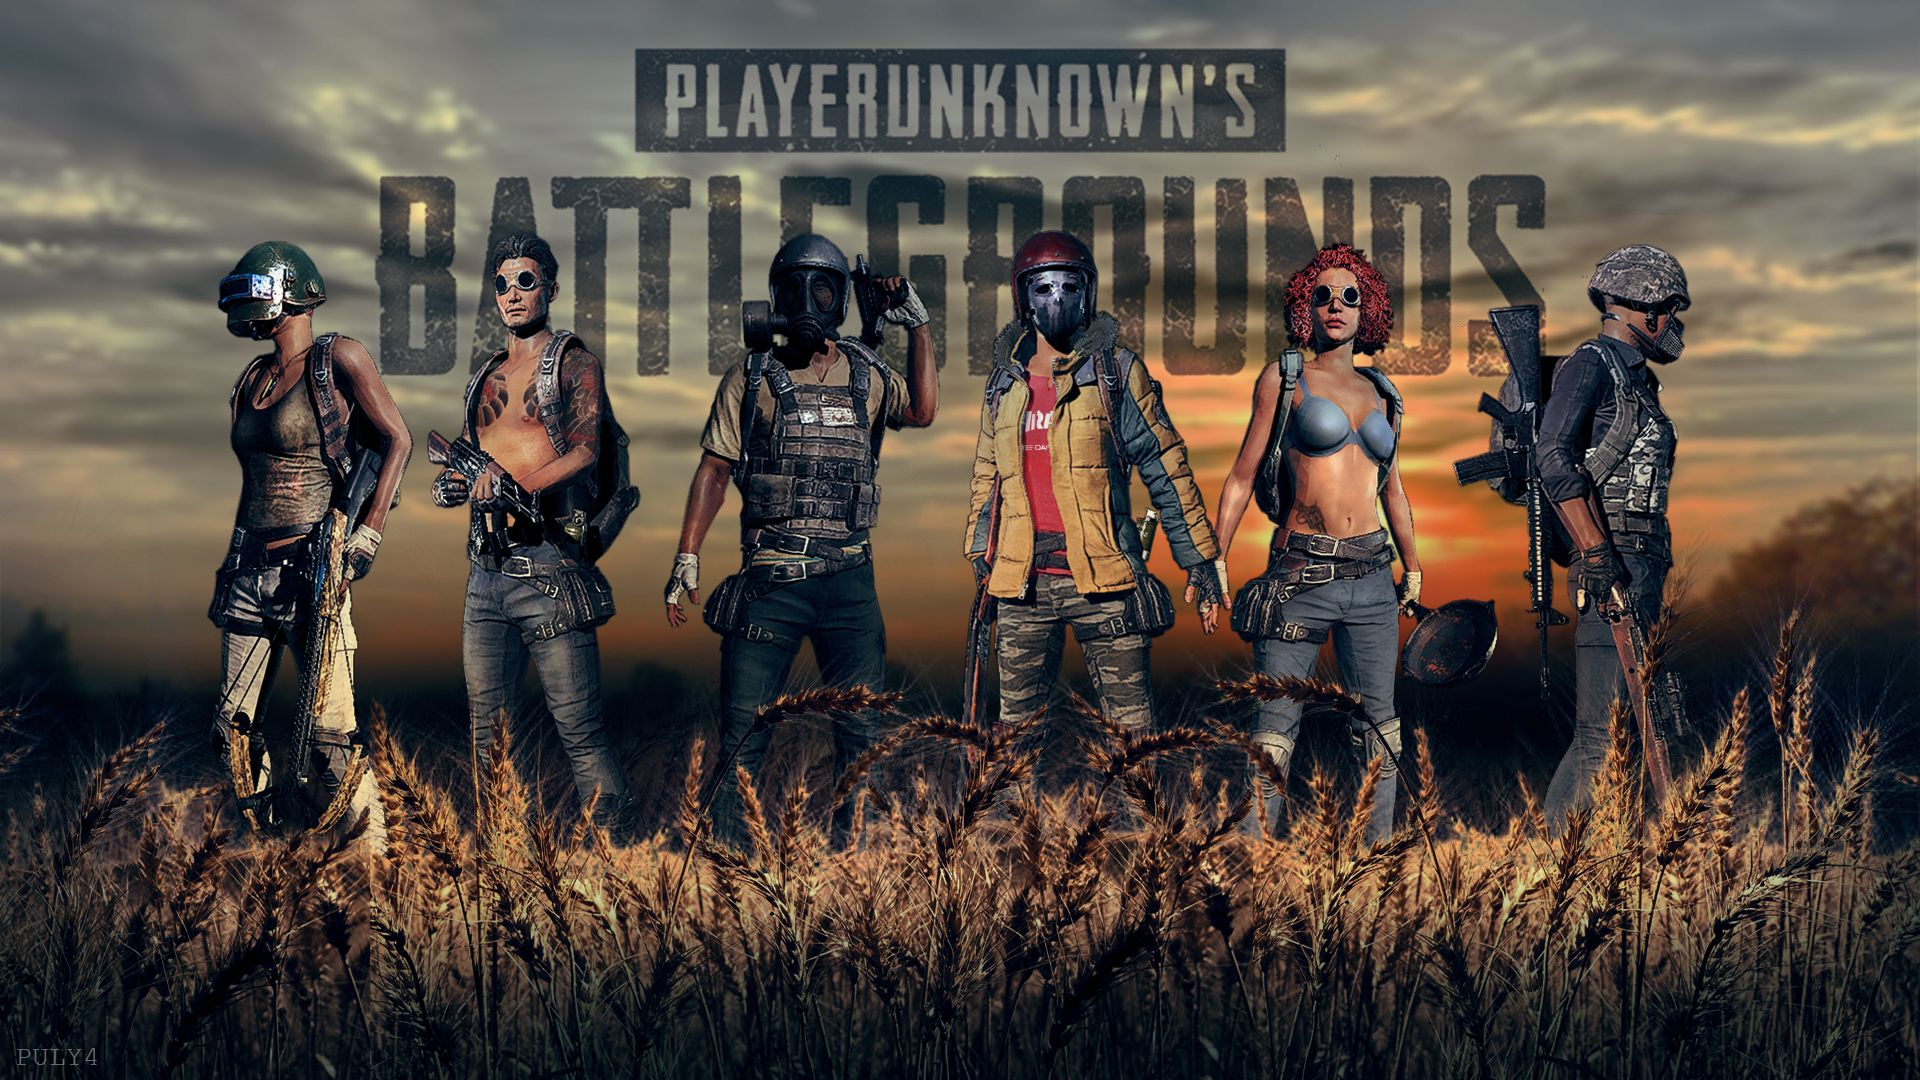 X Playerunknowns Battlegrounds